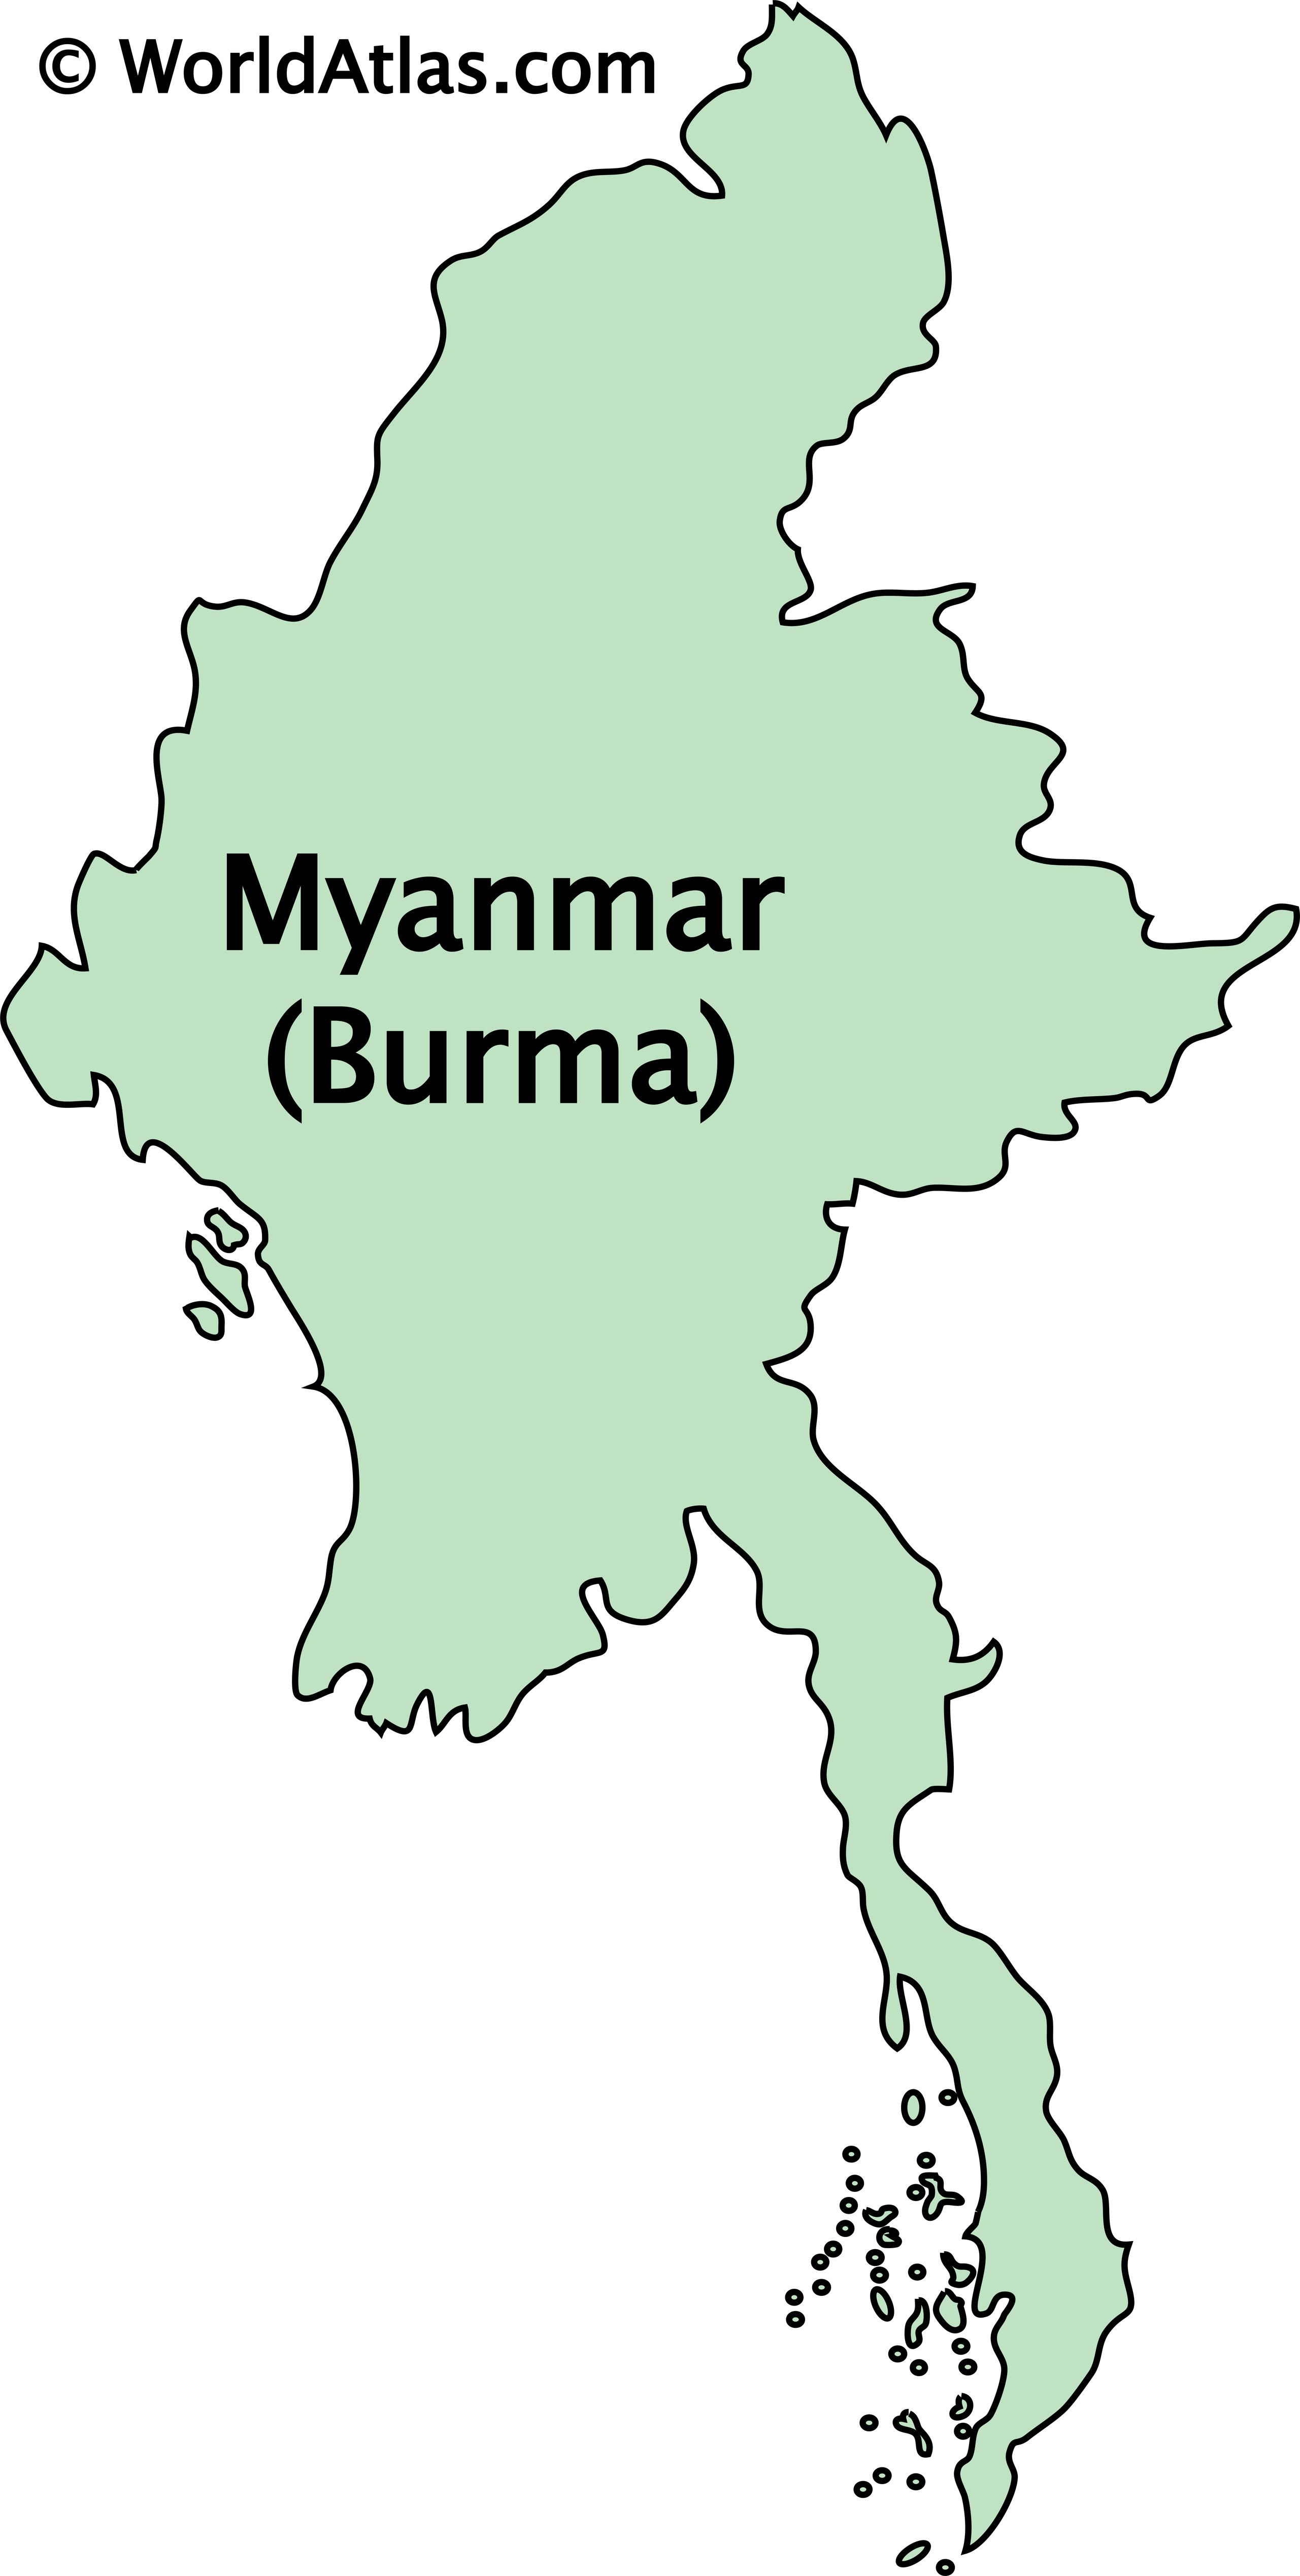 Outline Map of Burma/Myanmar